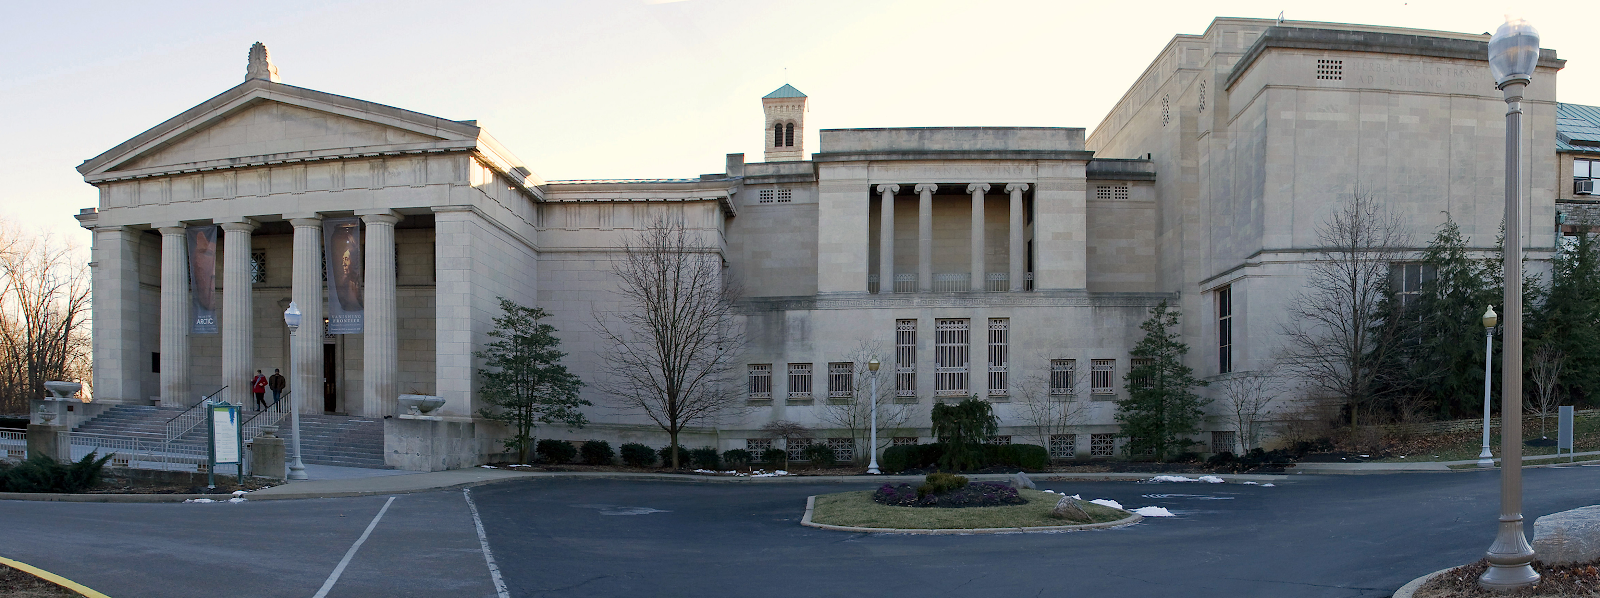 The Cincinnati Art Museum building with parking lot in the foreground